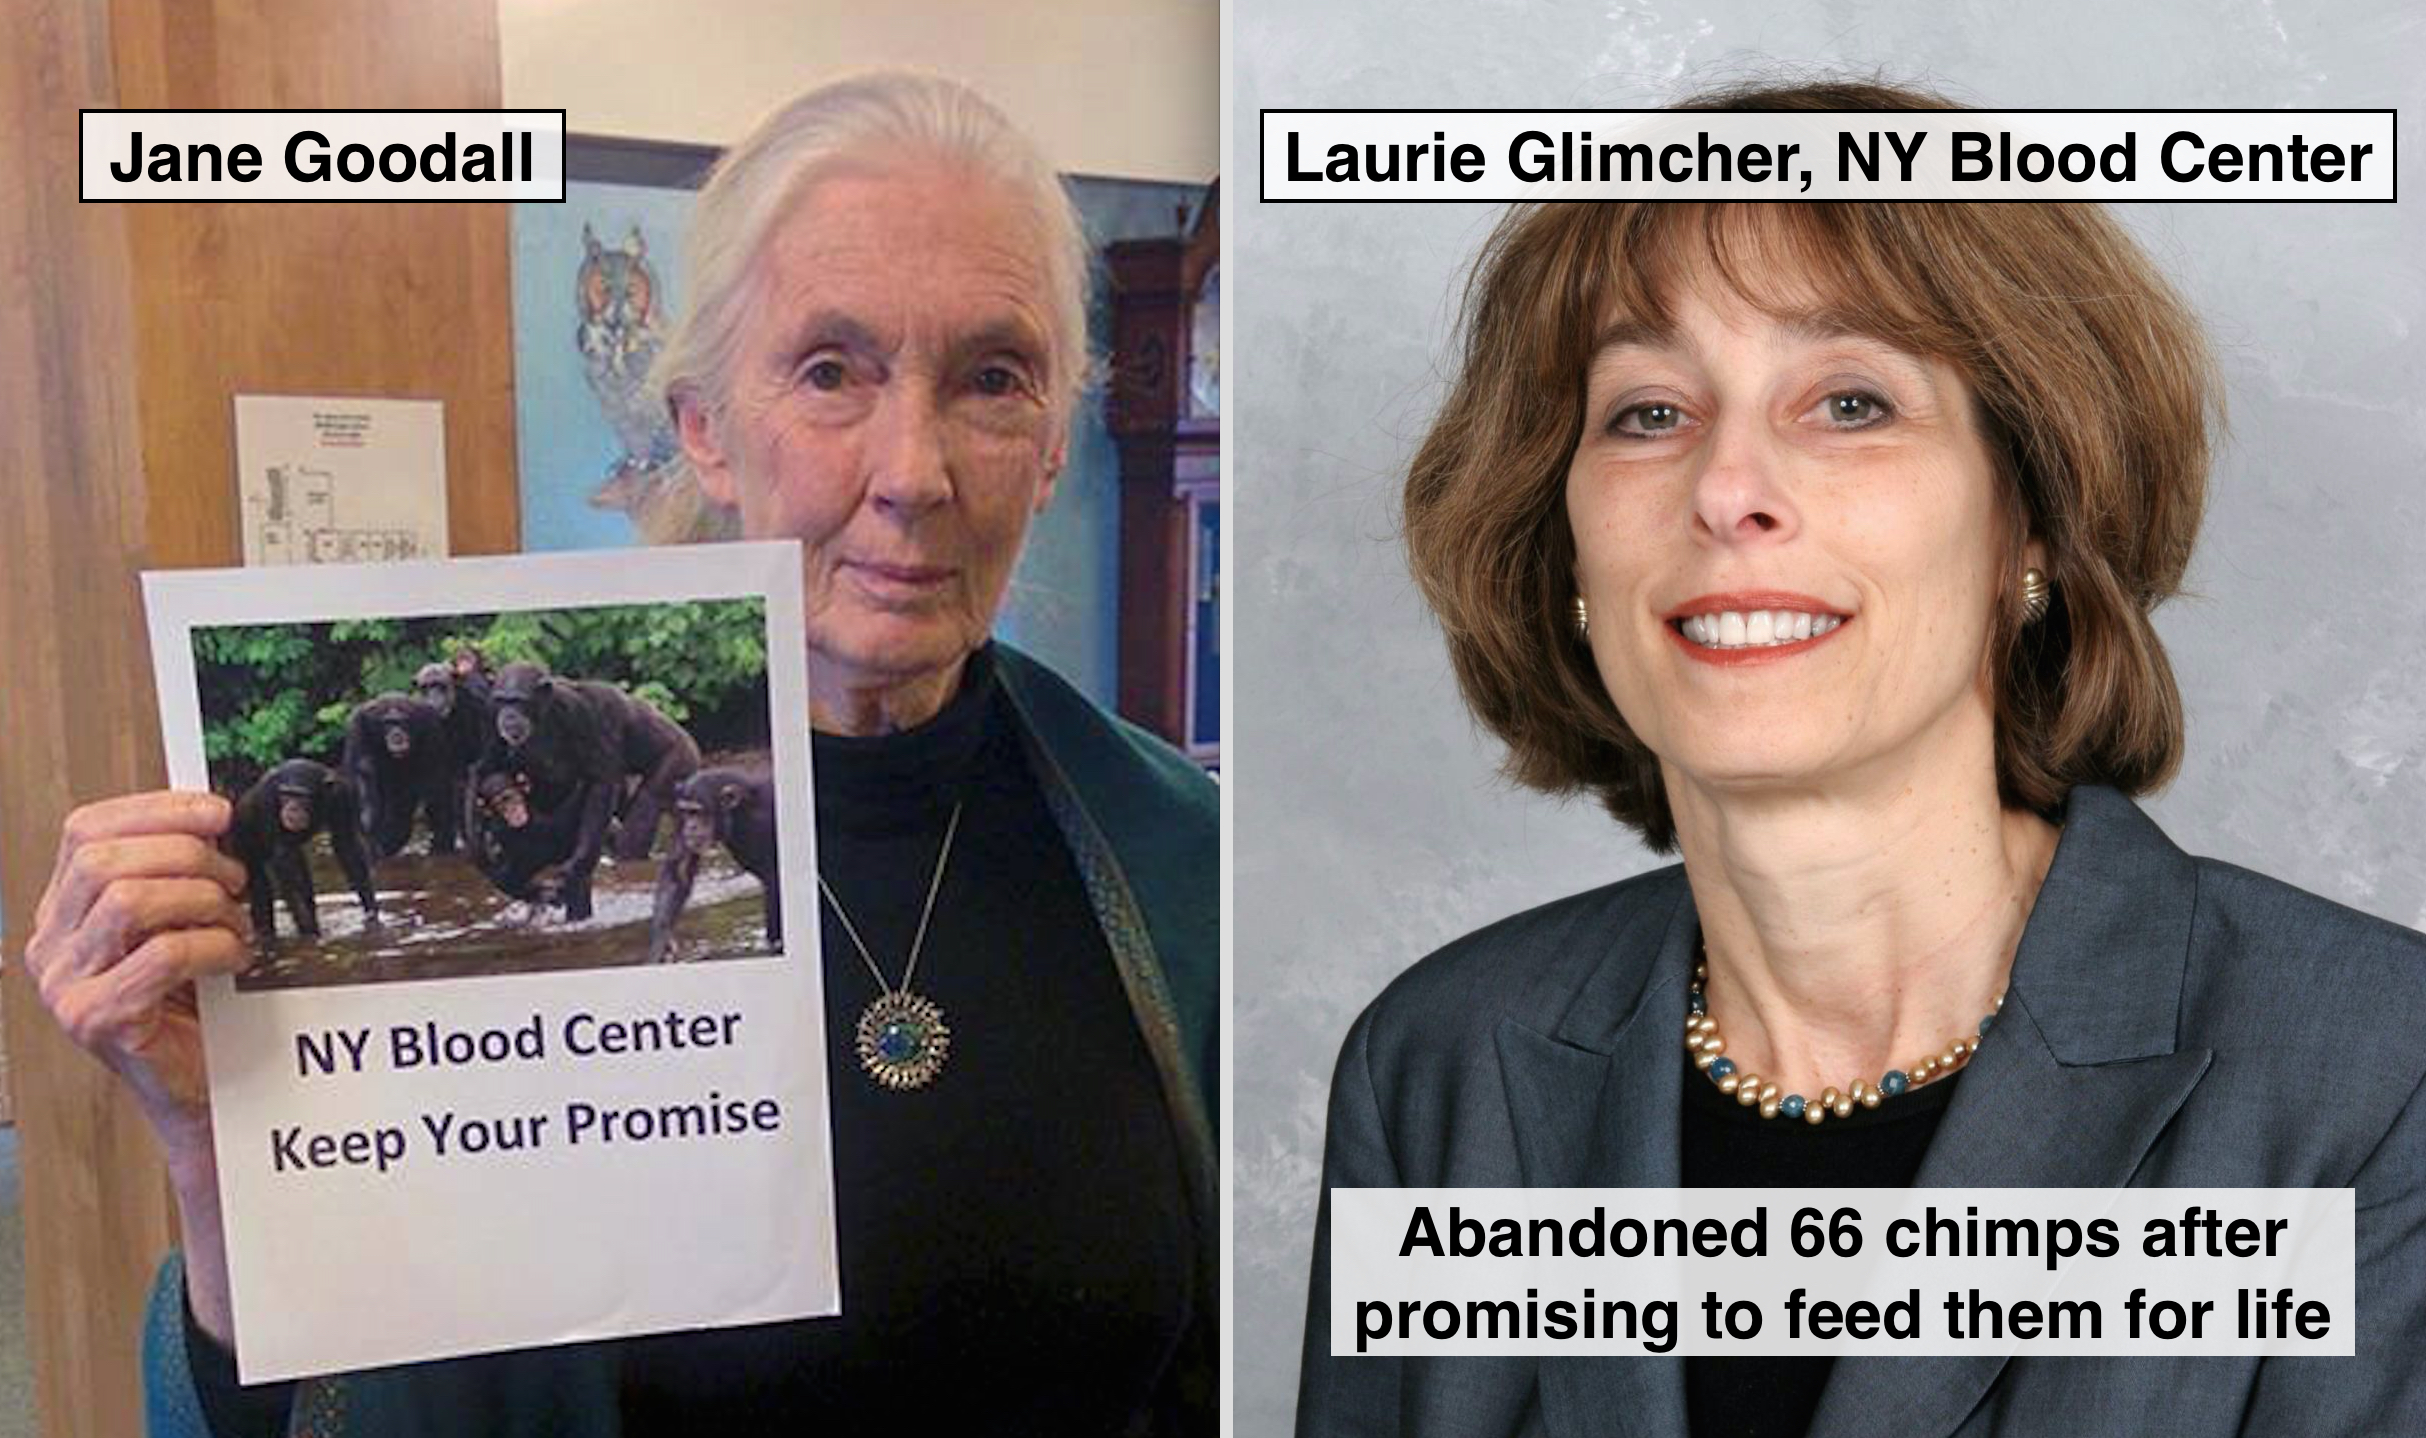 In a letter to the NY Blood Center, Jane Goodall said the organization has a moral obligation to pay for the chimps' care.